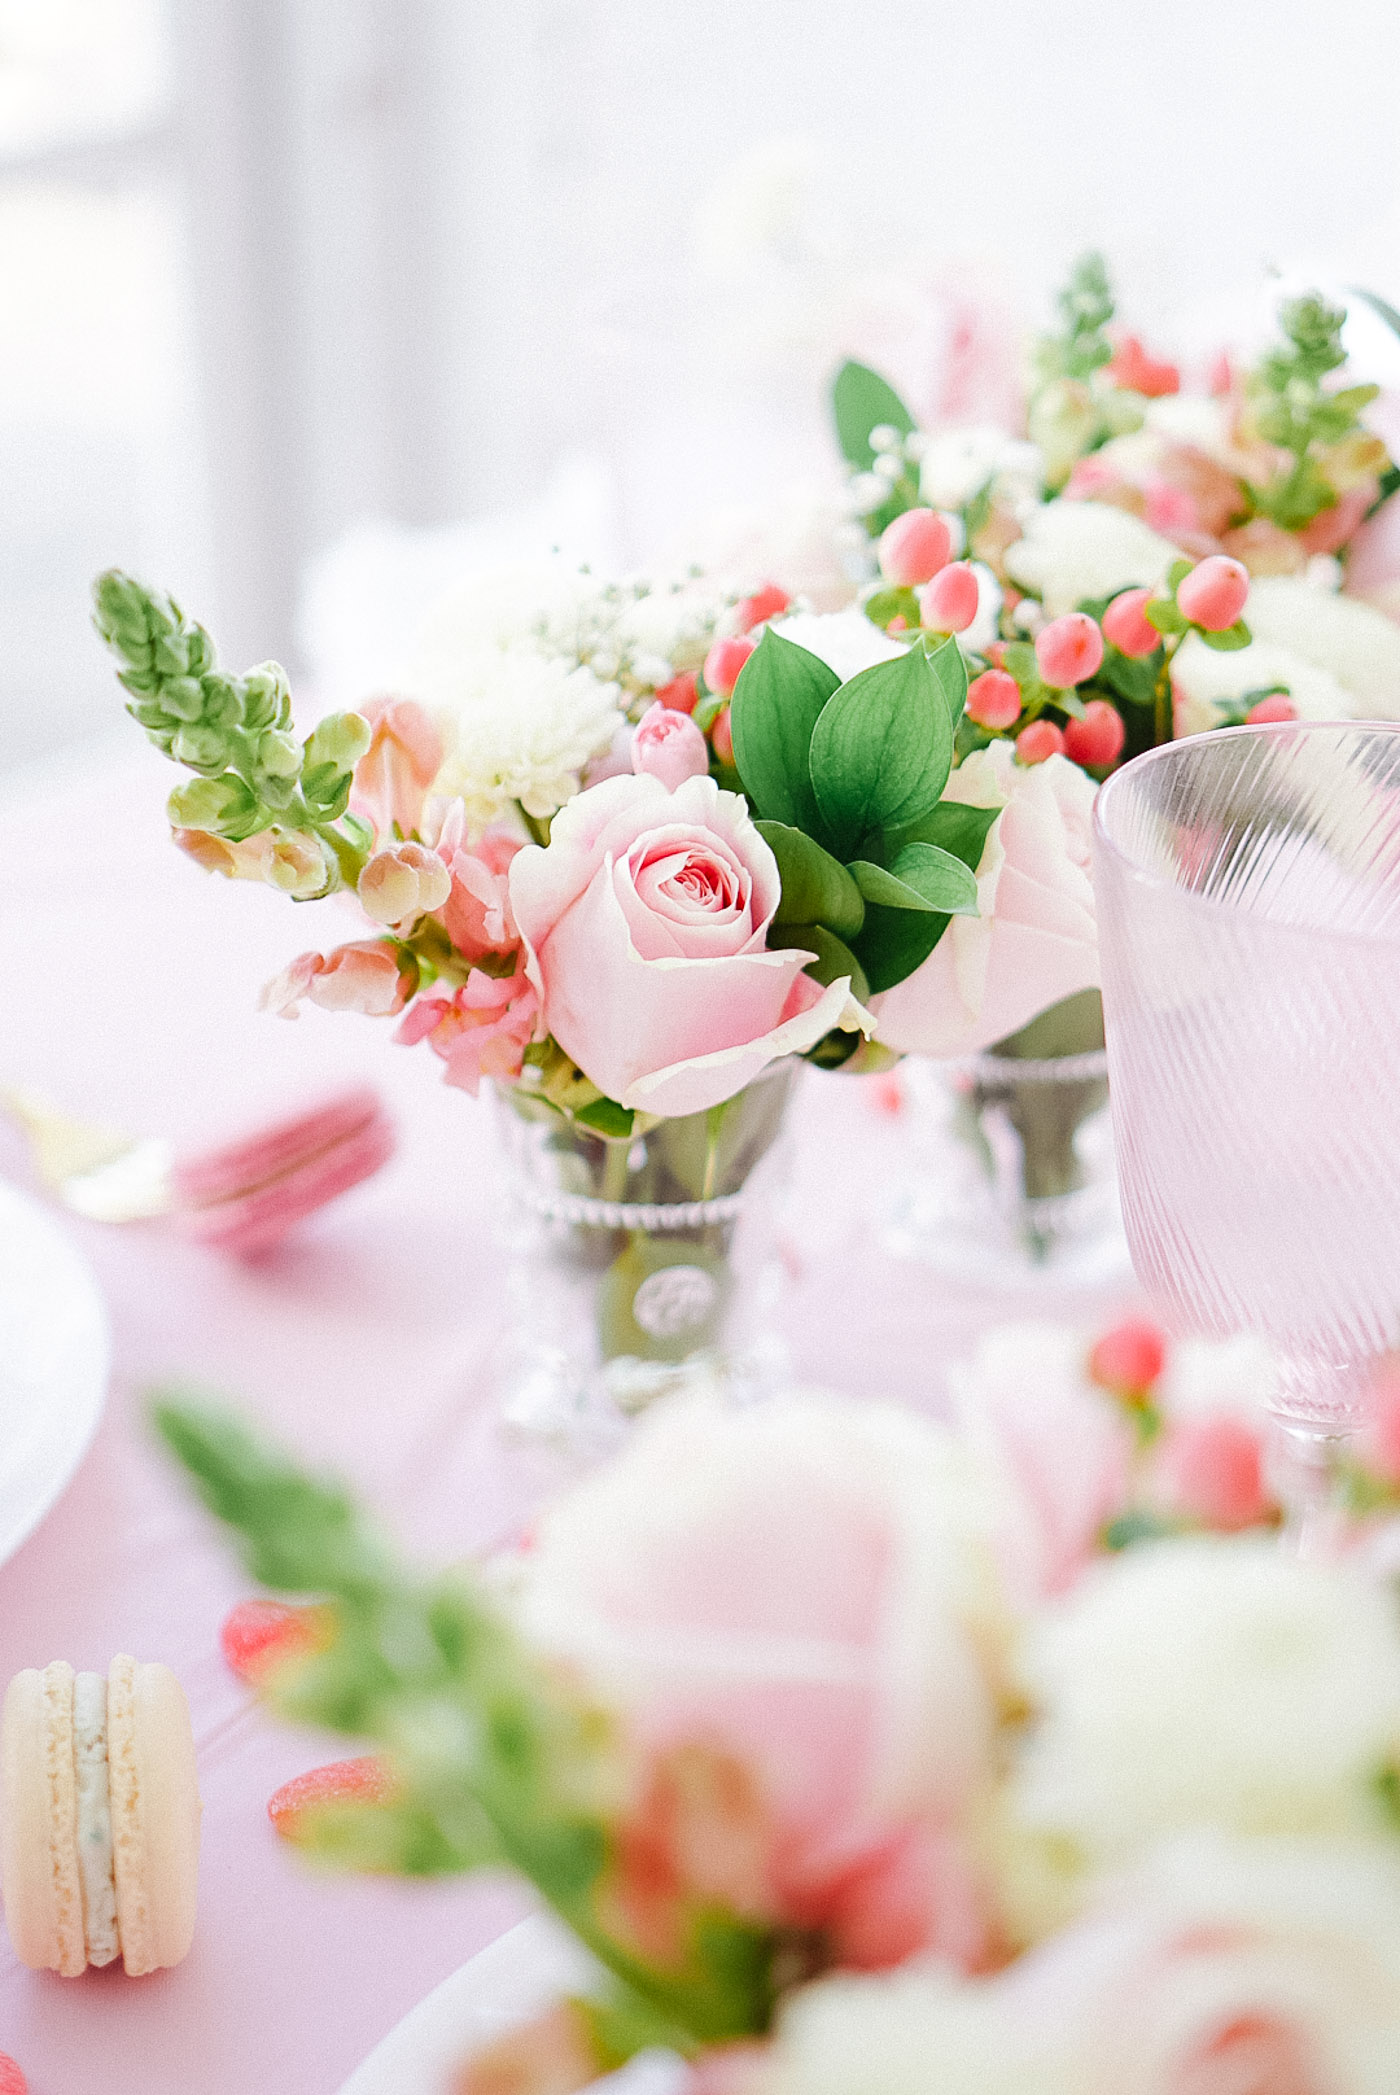 A feminine Valentines Day party by Lauren Cermak of the Southern Lifestyle Blog, Going For Grace. Tips and tricks to make your Valentine's Day special!